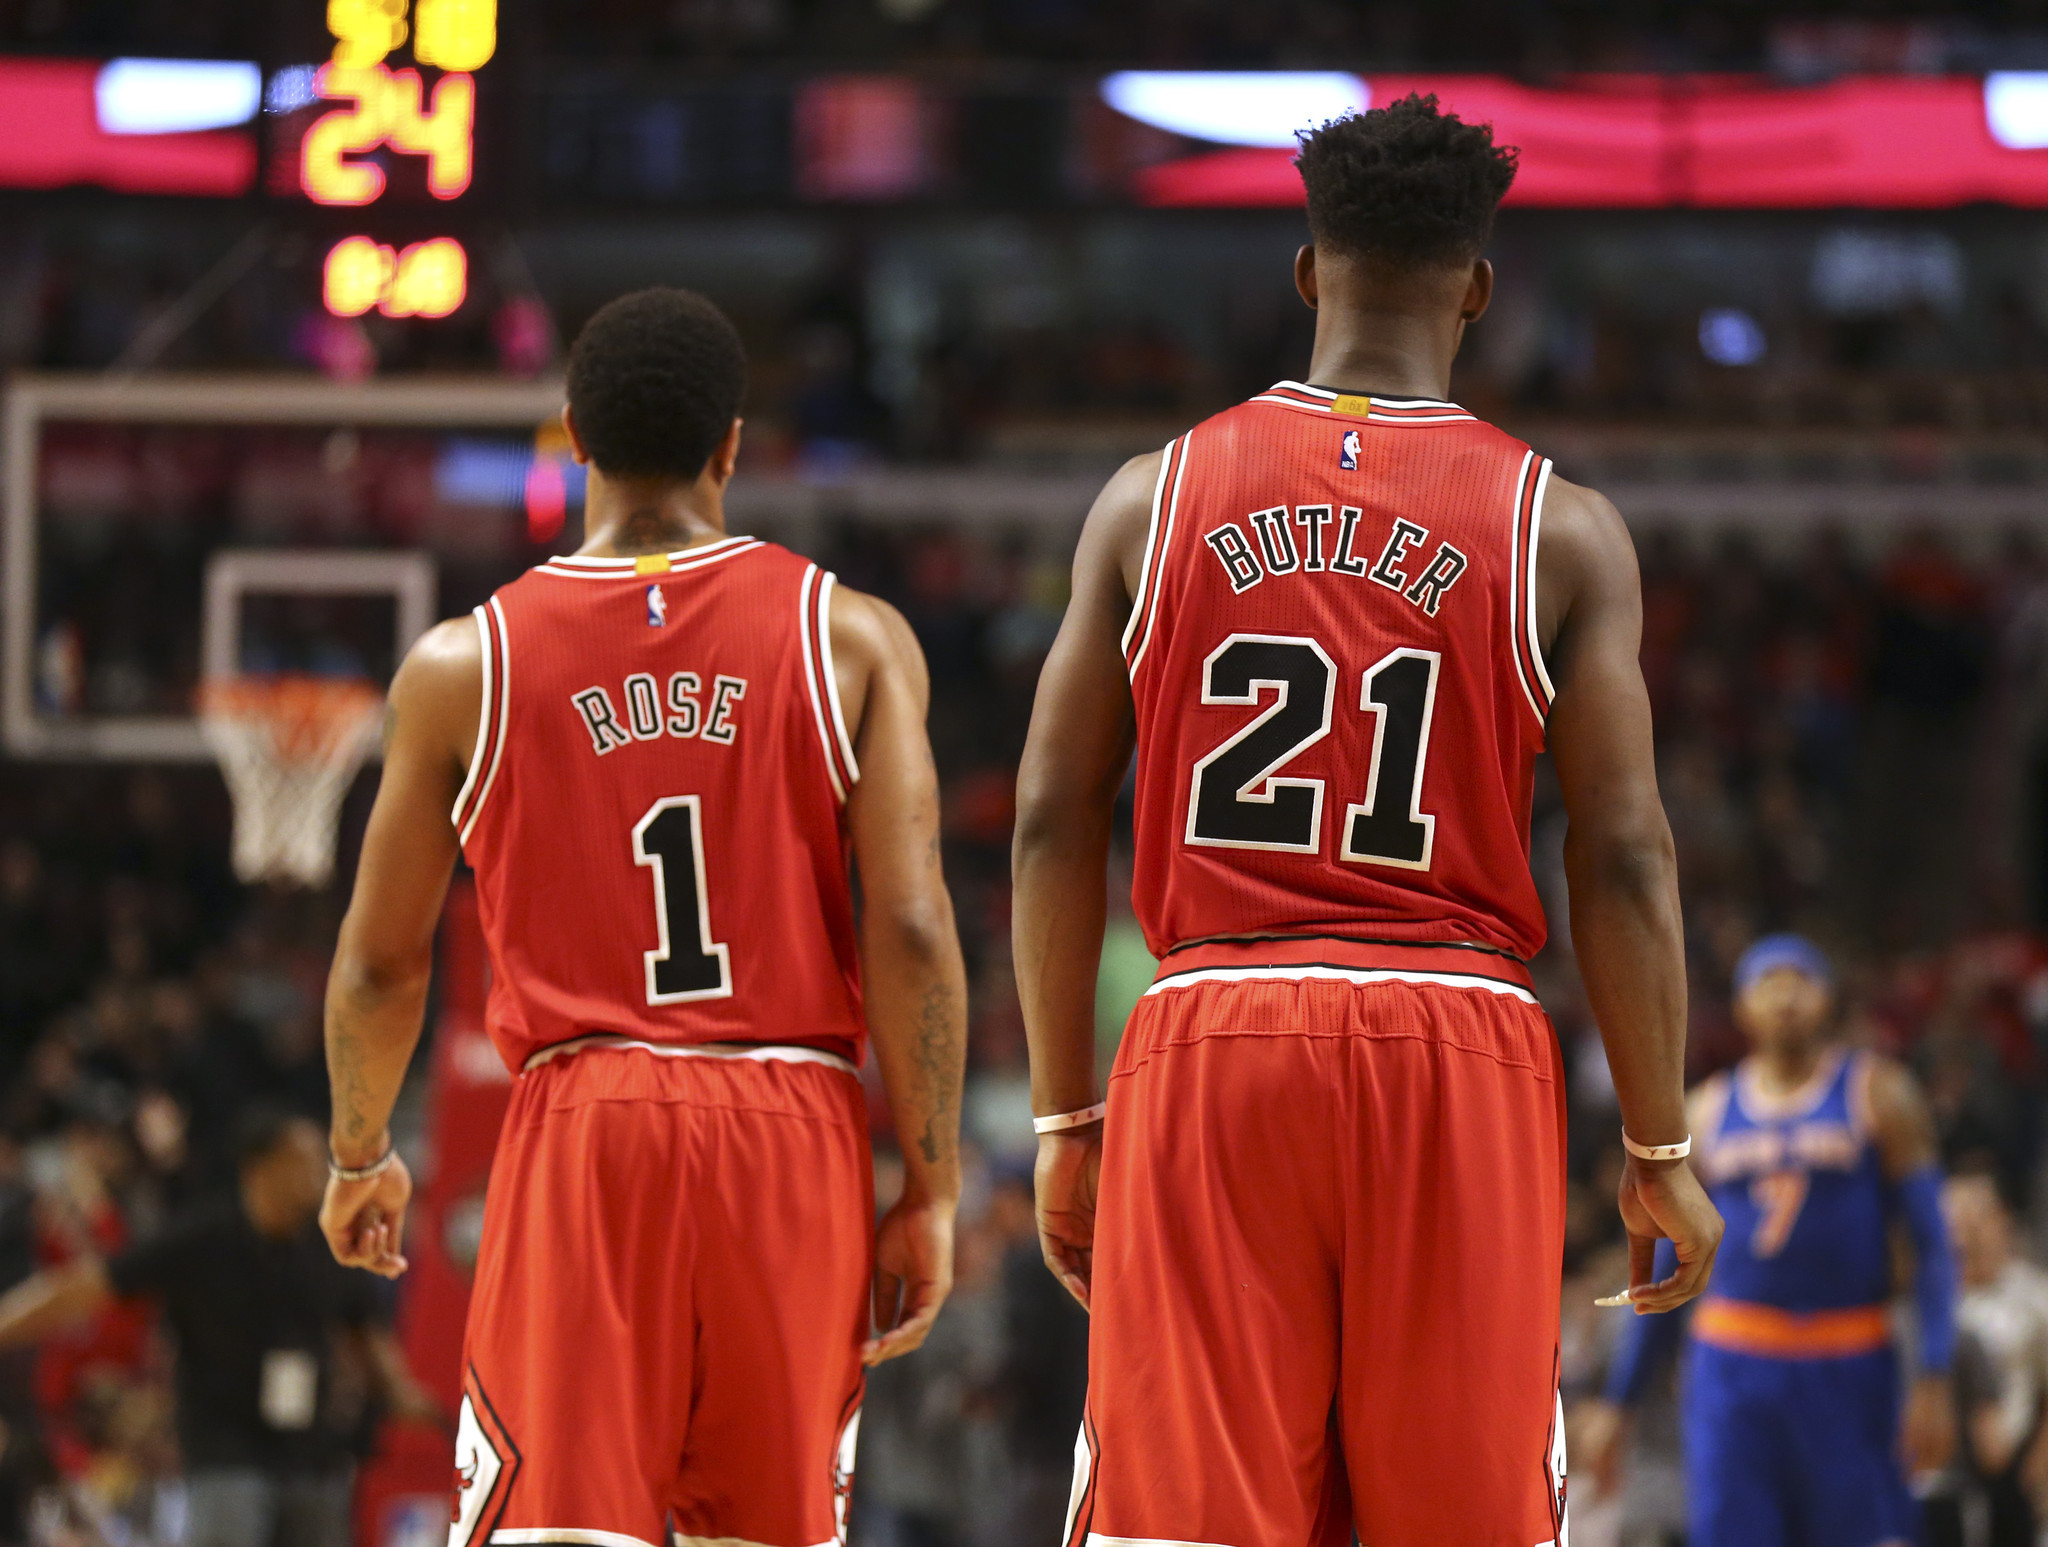 a0345dad7c8a Questions remain about Derrick Rose and Jimmy Butler s ability to co-exist  - Chicago Tribune